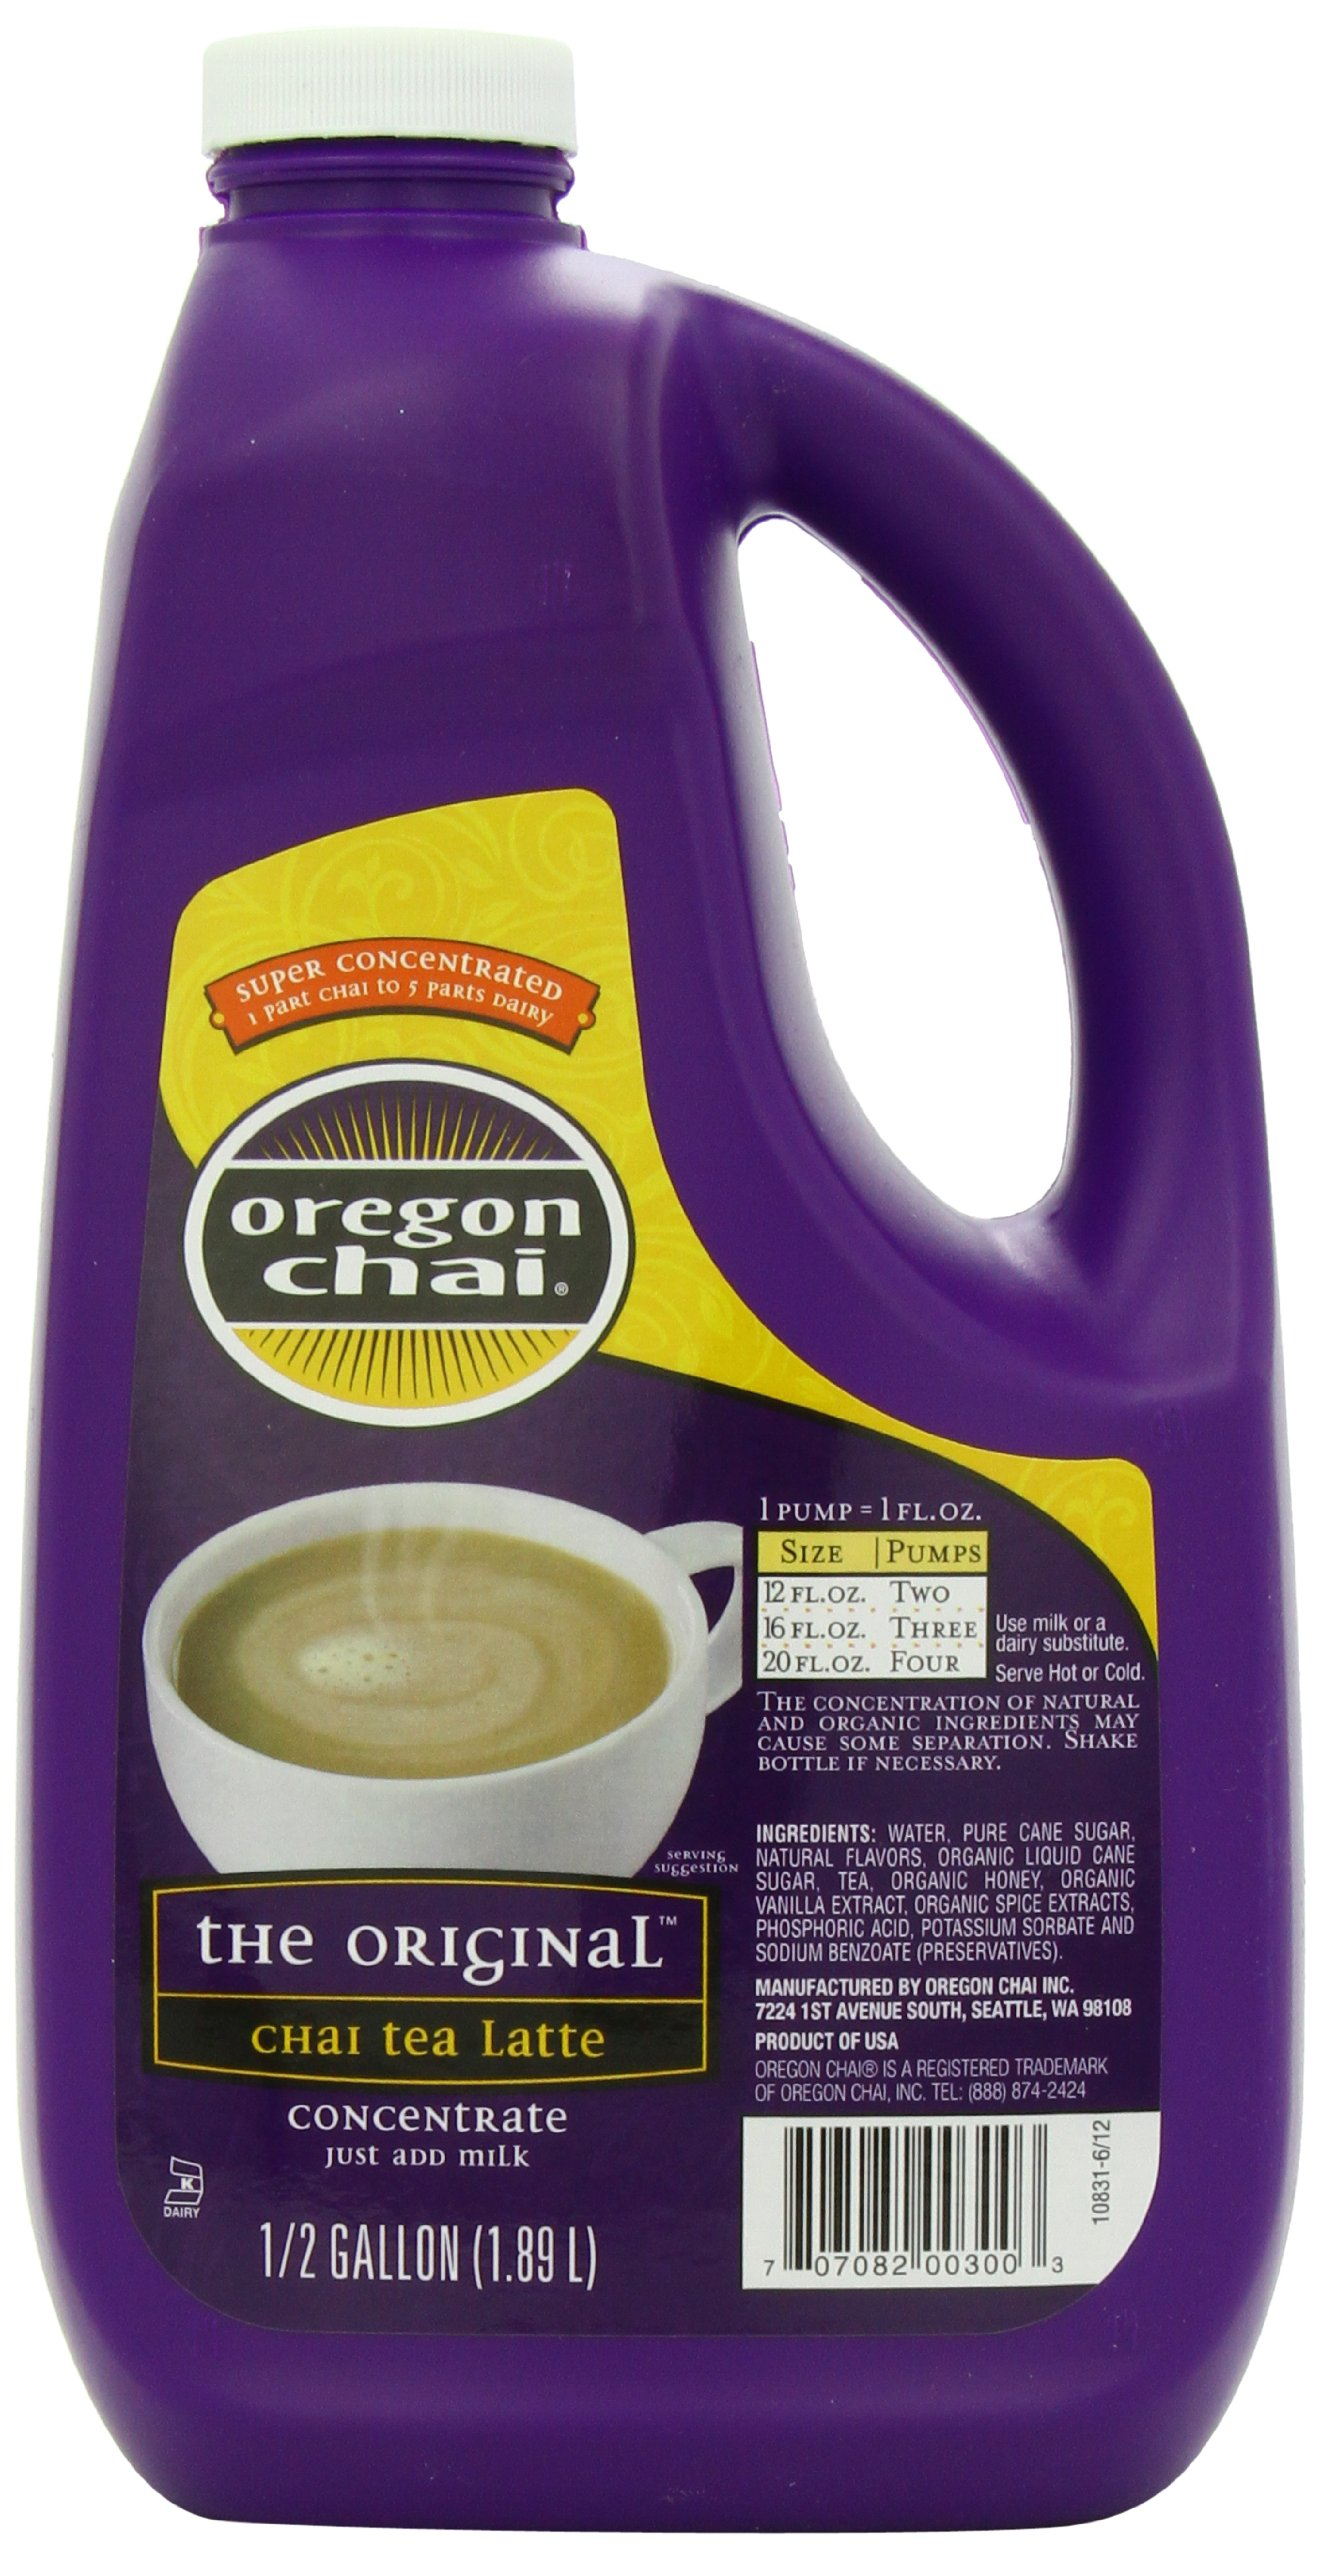 Oregon Chai Original Chai Tea Latte Concentrate, 64 Ounce Jug, Liquid Chai Tea Concentrate, Spiced Black Tea For Home Use, Café, Food Service by Oregon Chai